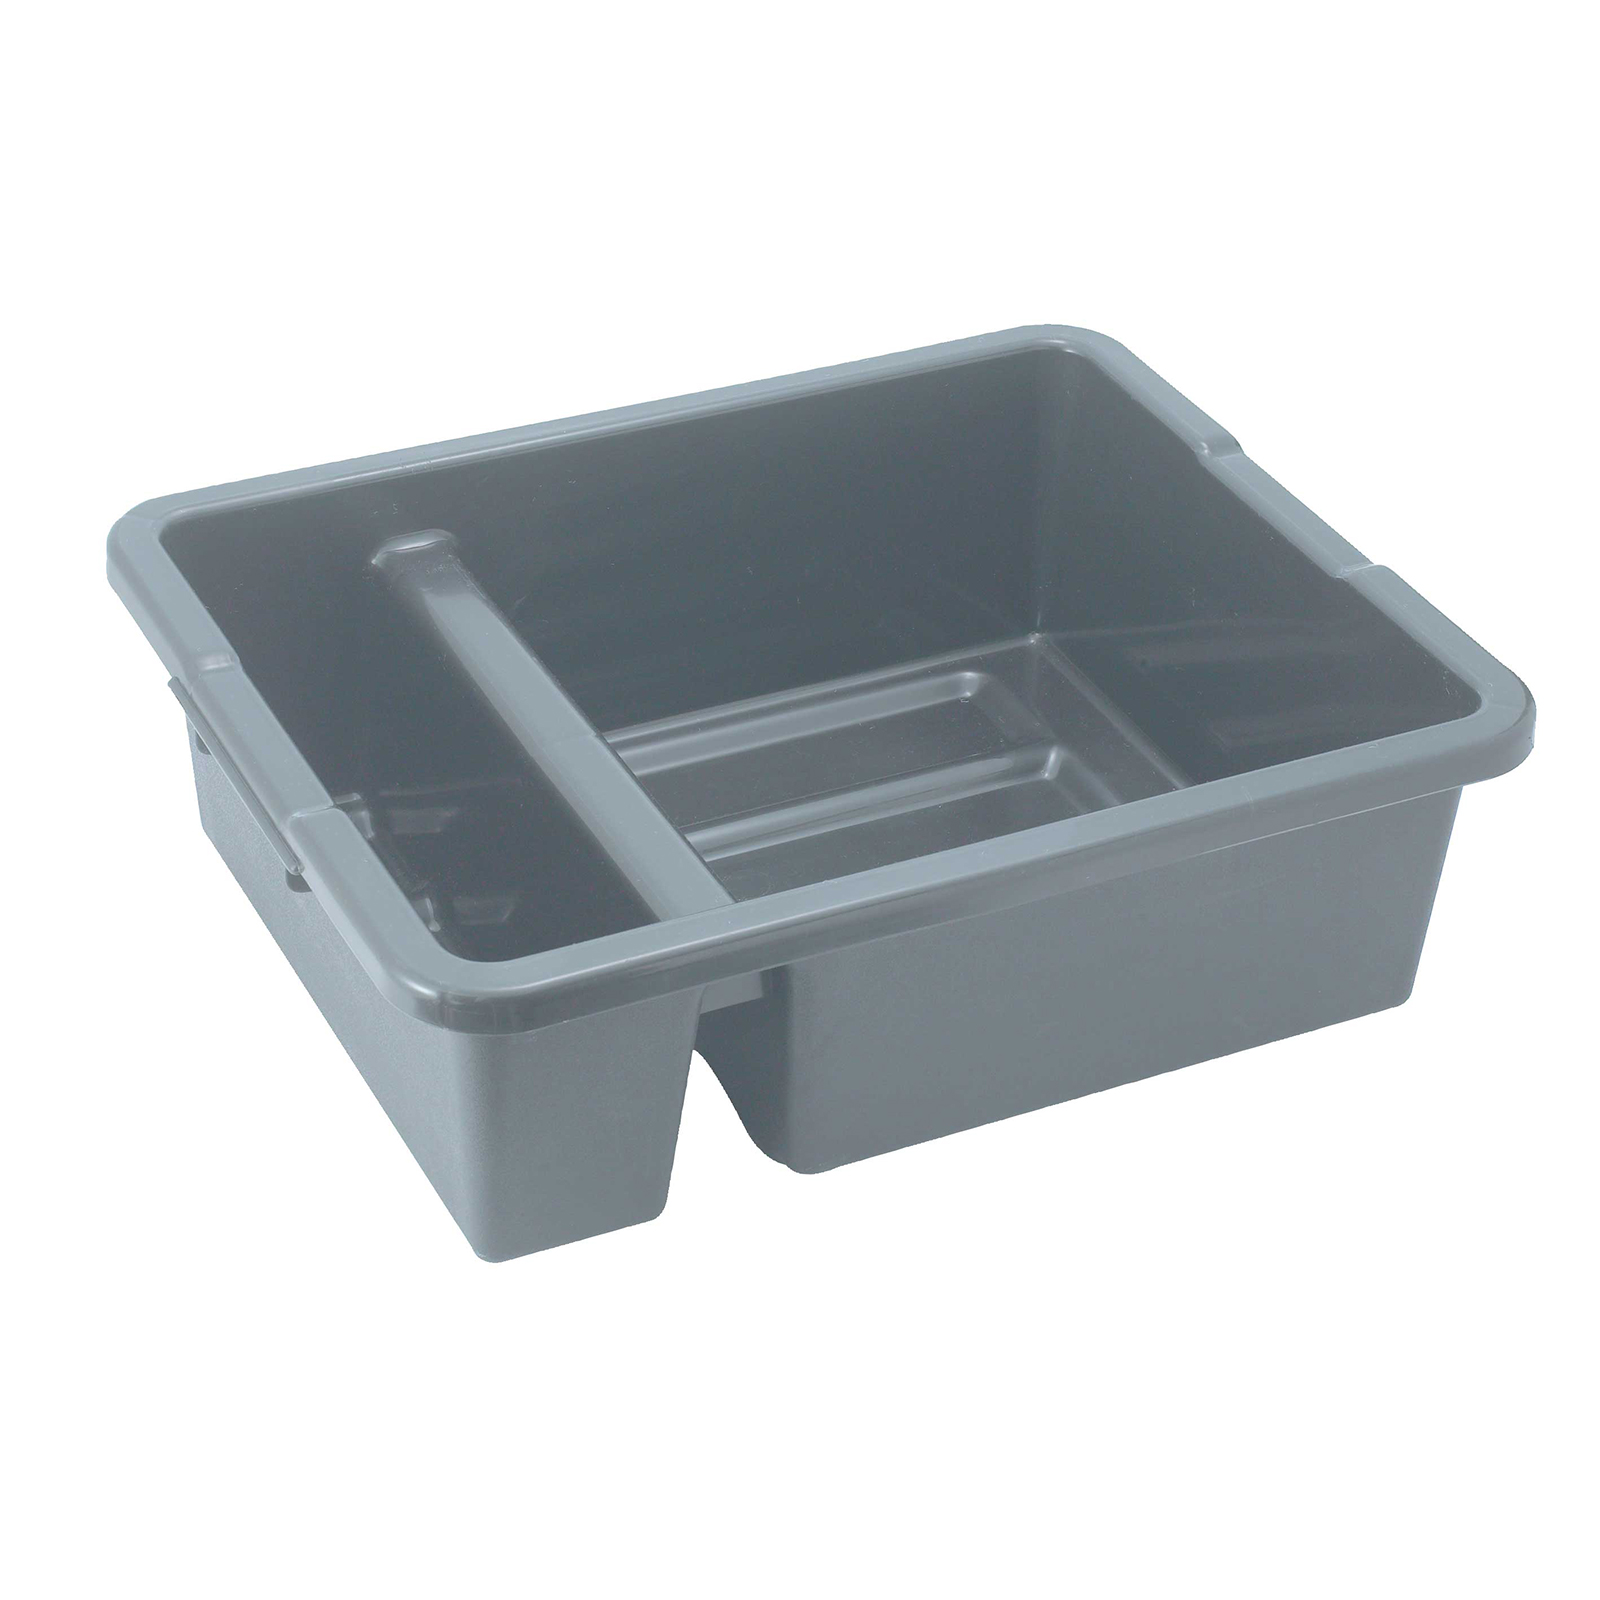 Winco PLTC-7G bus box / tub